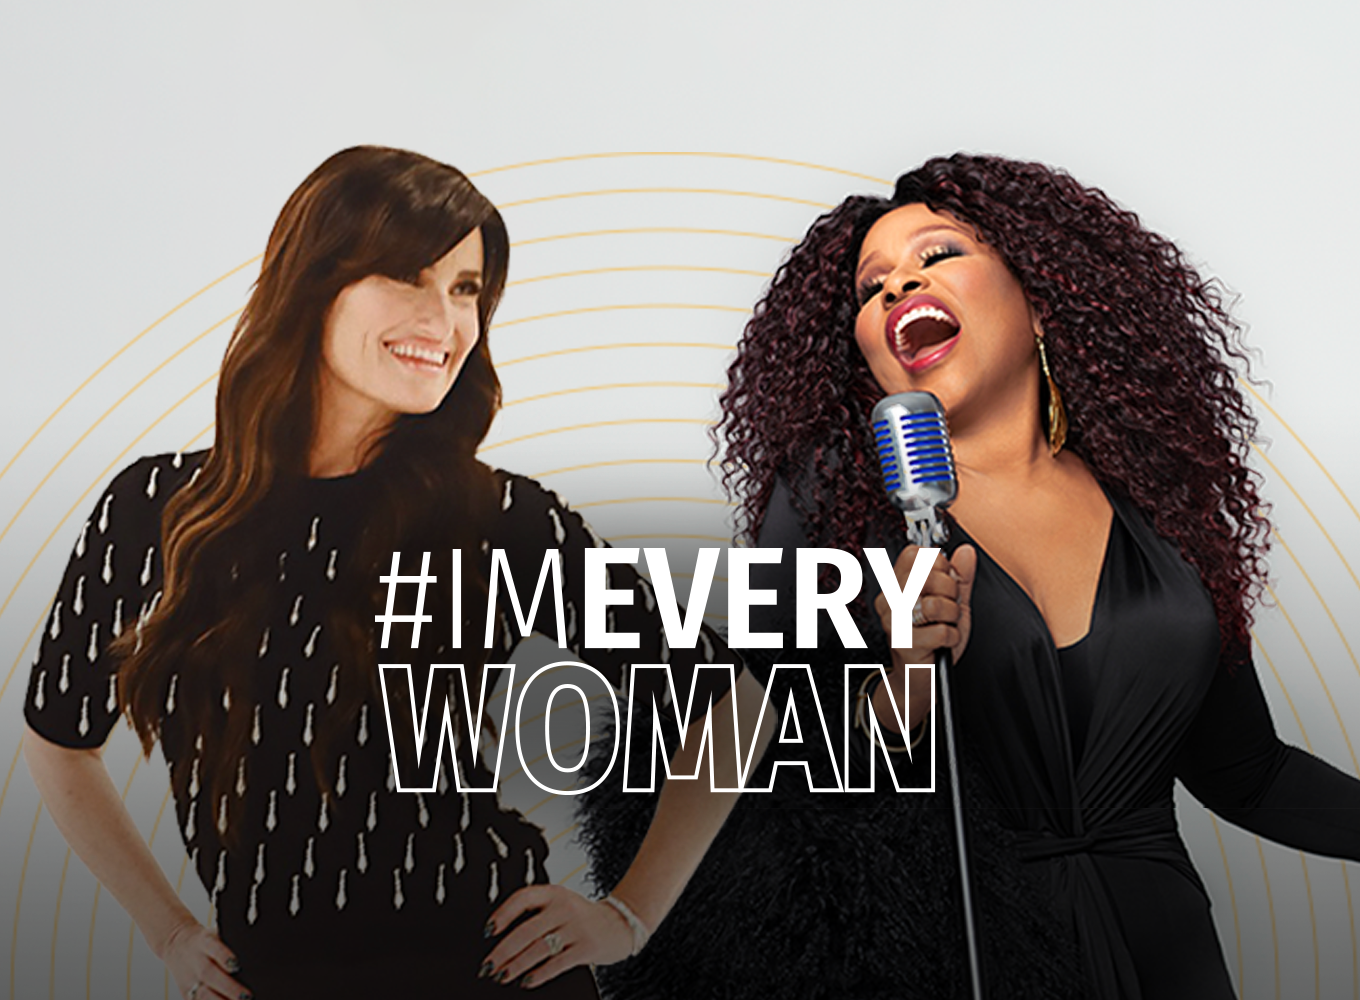 An image of Chaka Khan and Idina Menzel with the words #ImEveryWoman overlaid on top.